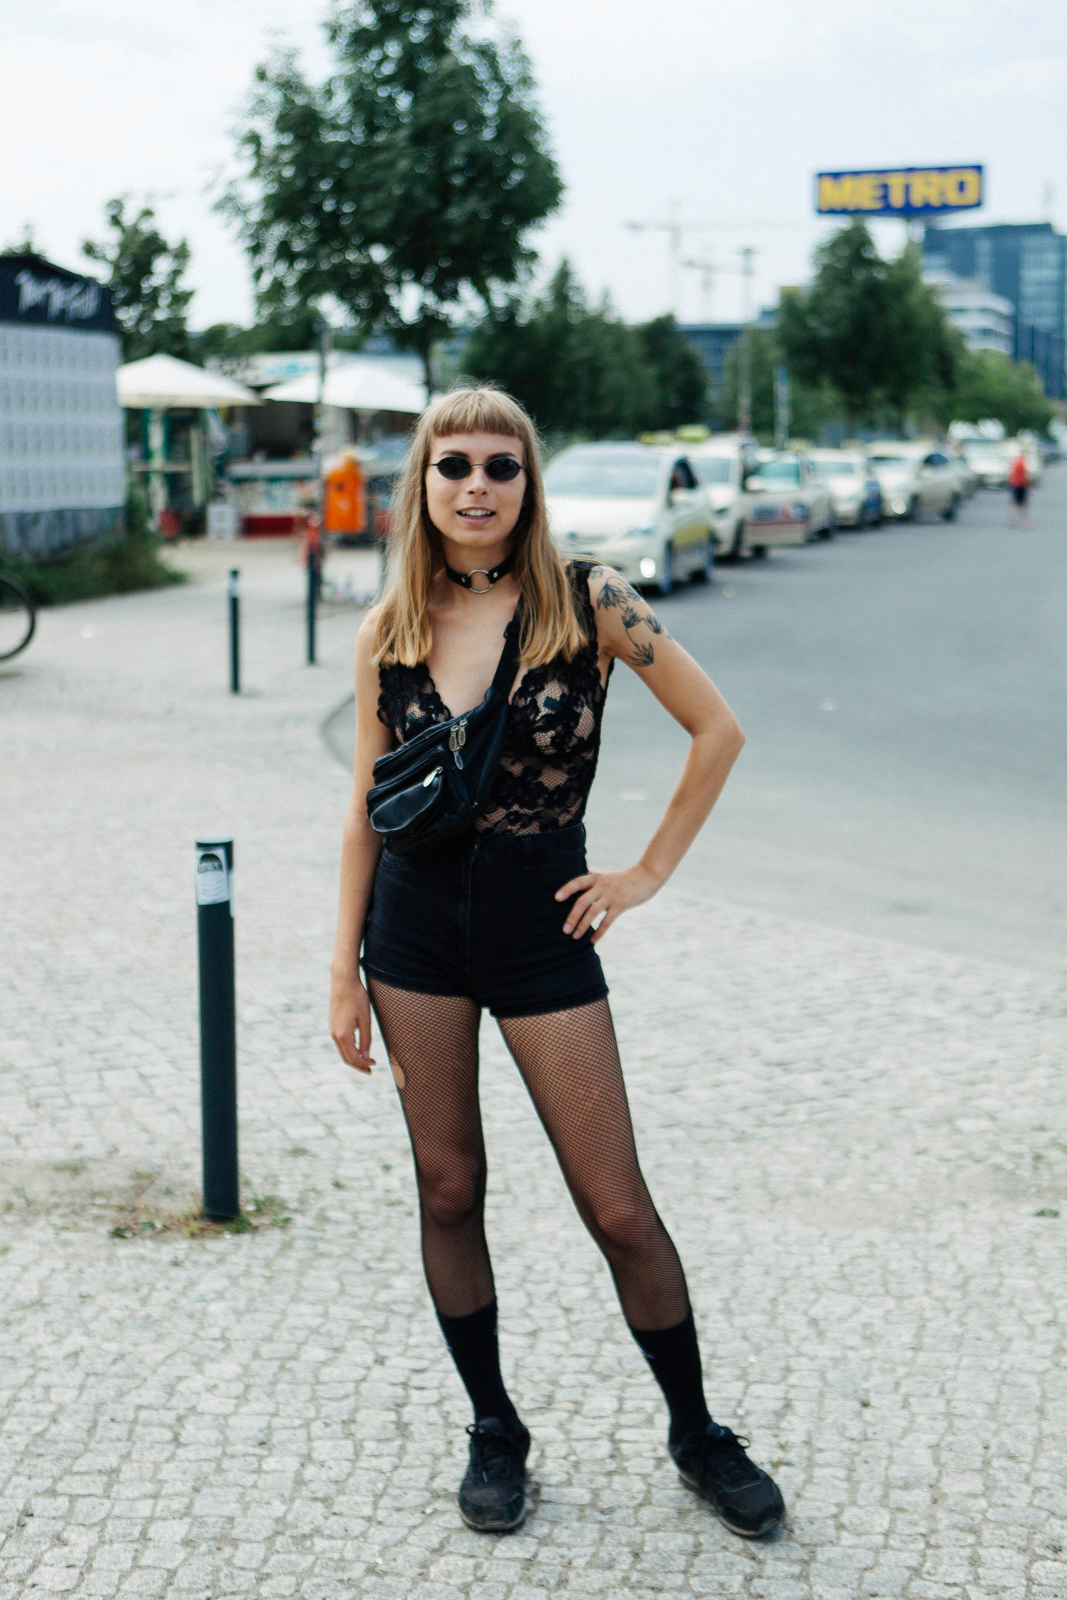 Berghain outfit 10 Reasons